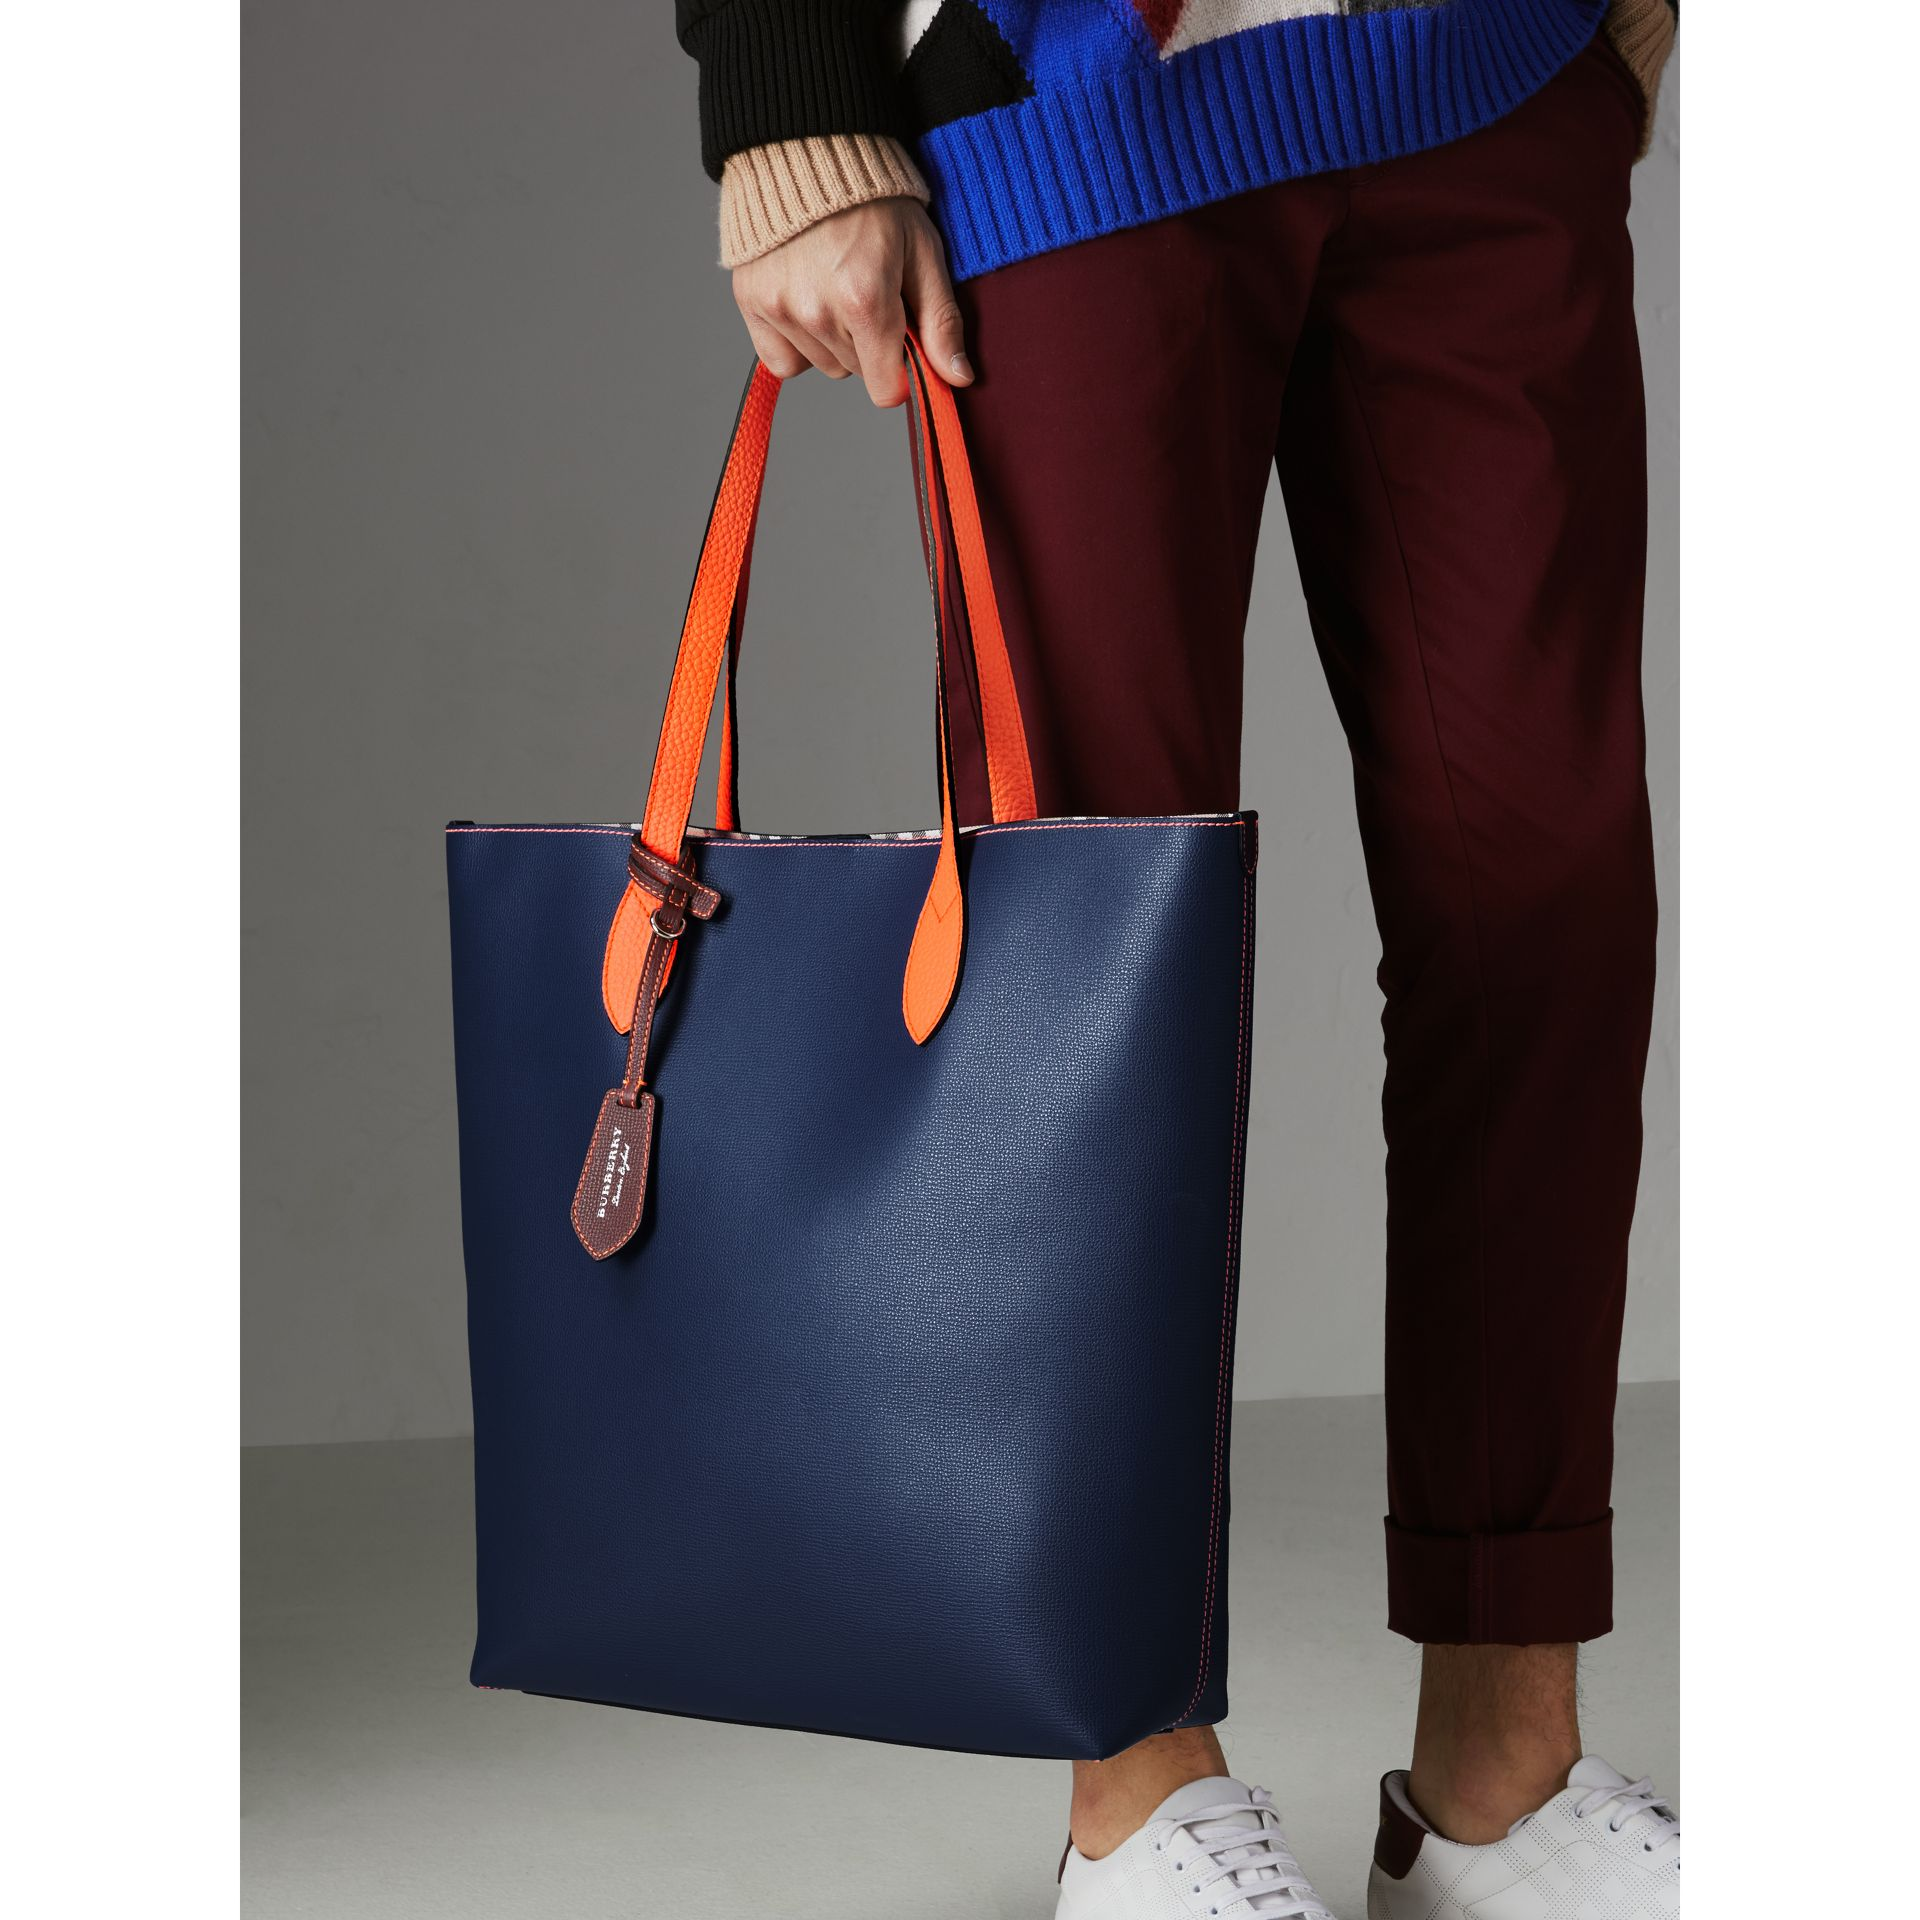 Medium Two-tone Coated Leather Tote in Dark Ultramarine | Burberry - gallery image 5